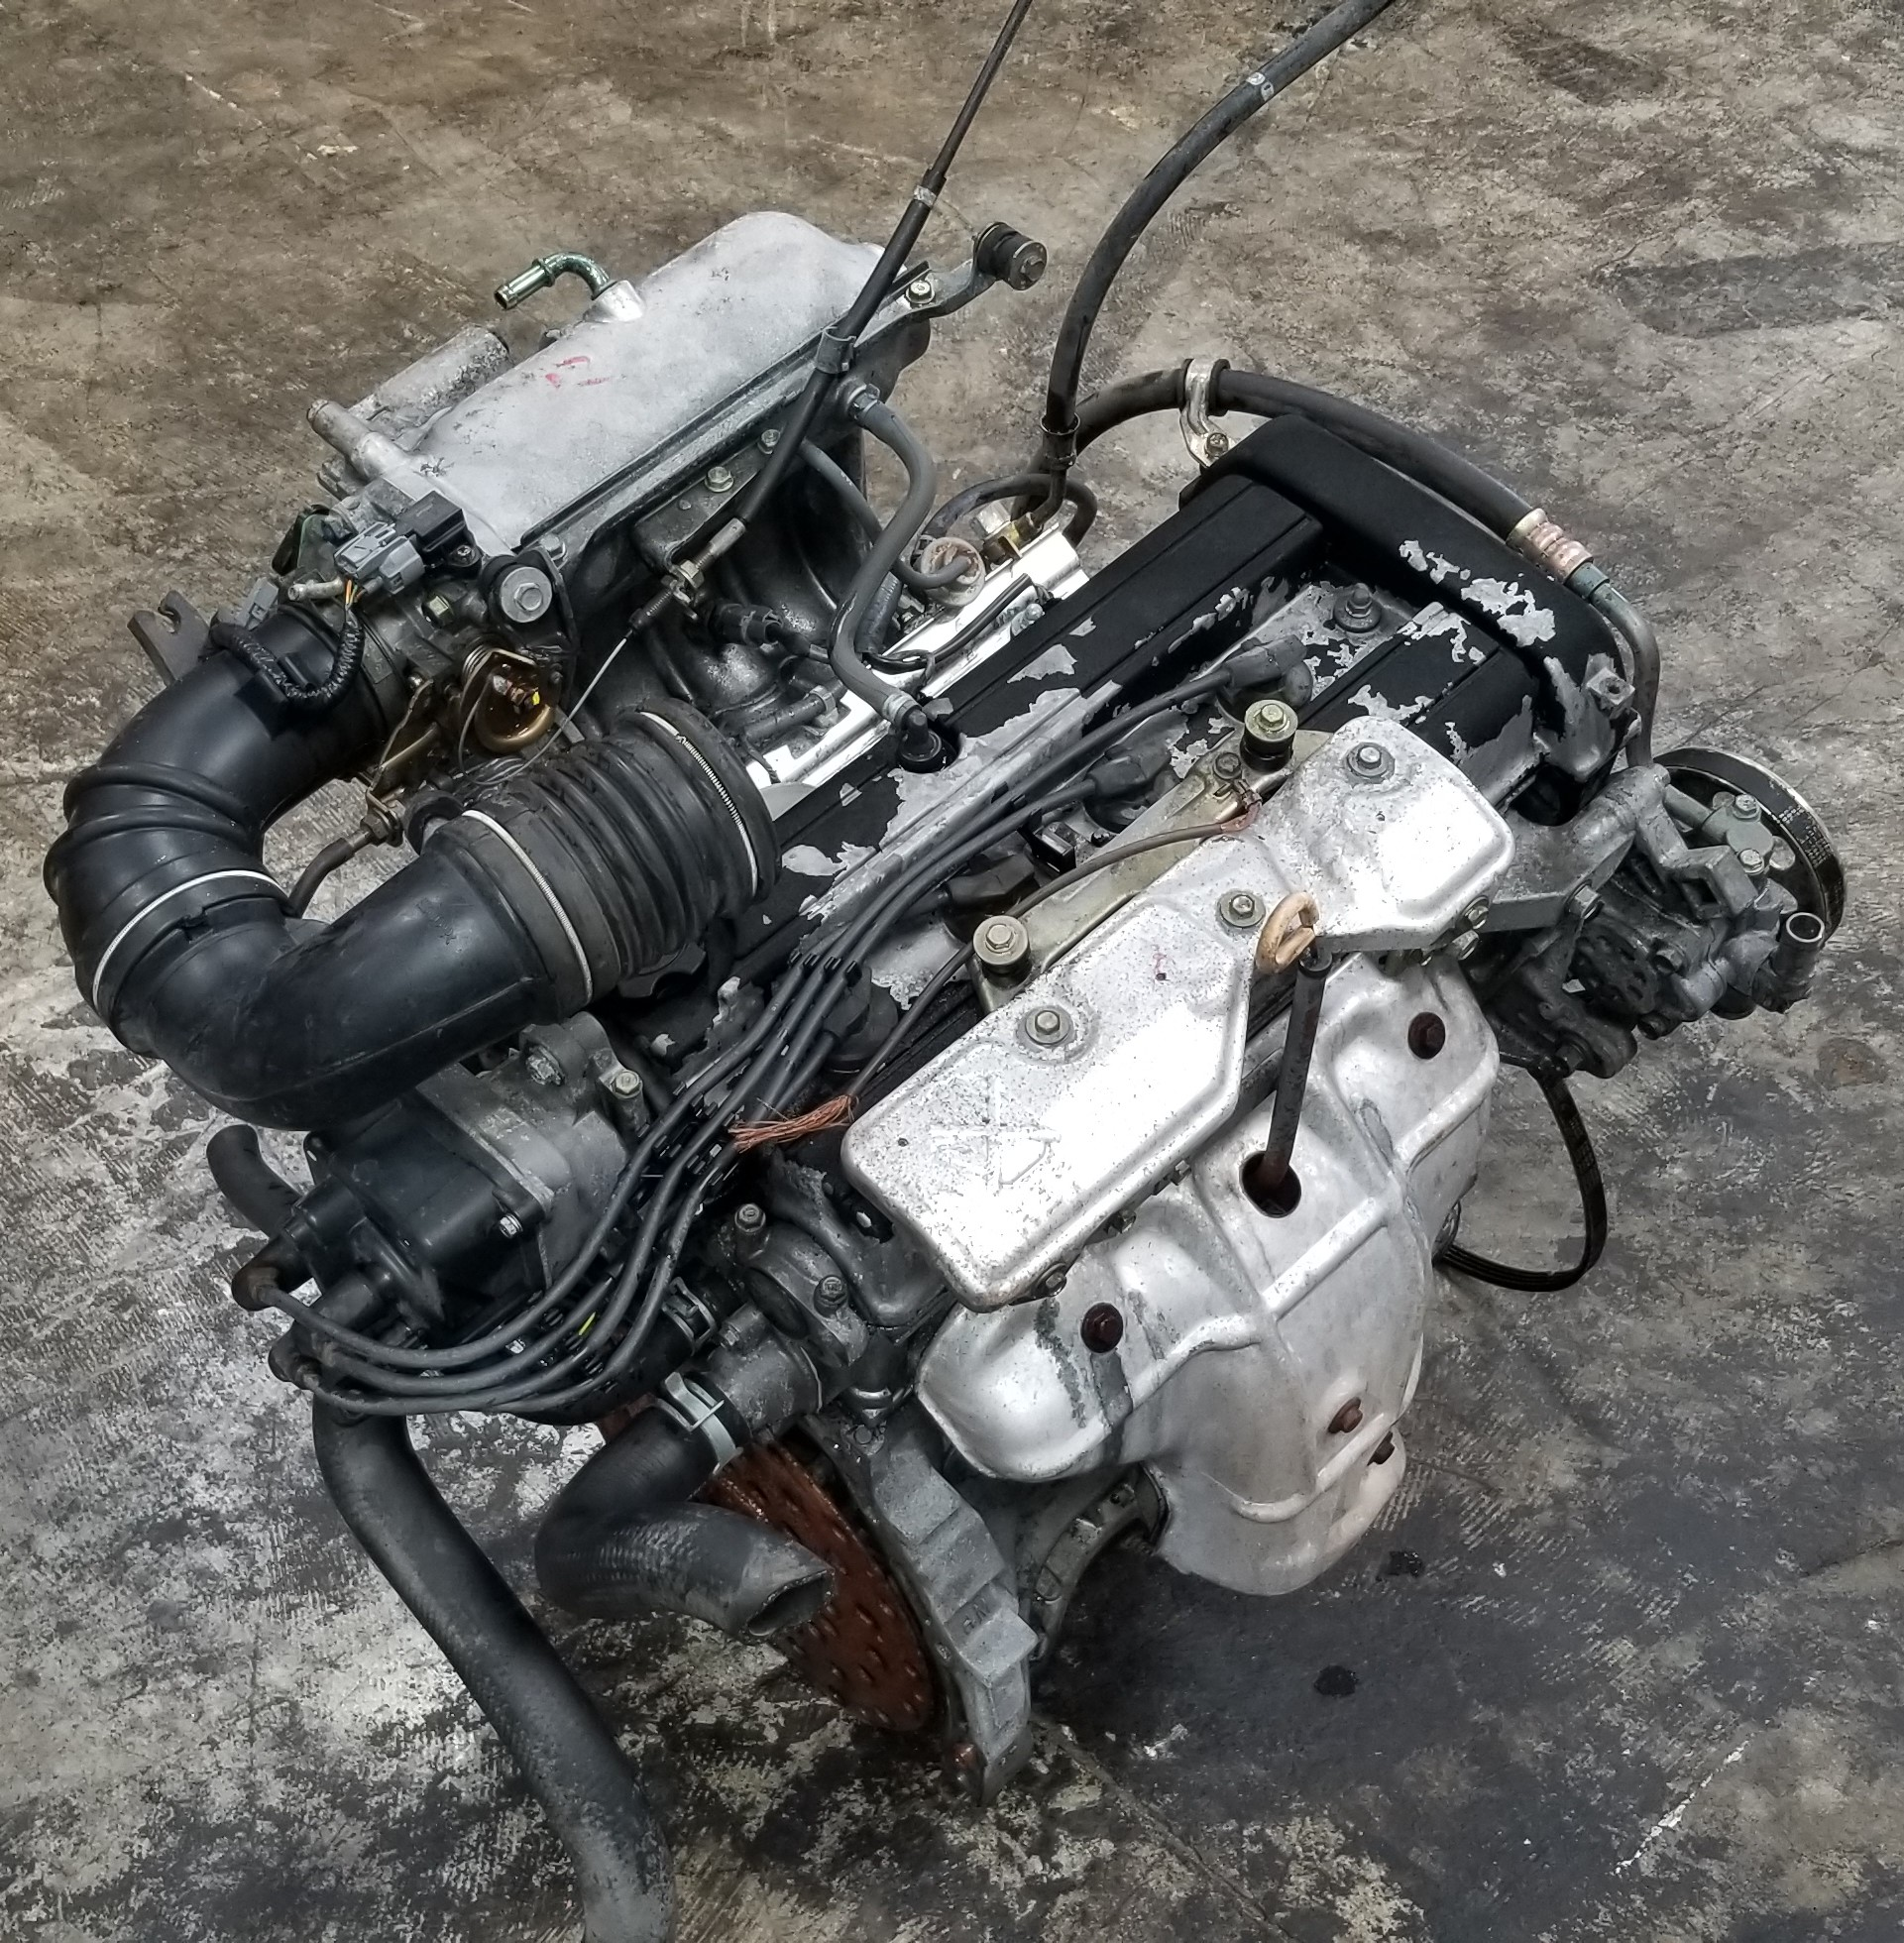 B20B 1997-1999 JDM Honda CRV Civic Integra B20 DOHC Engine